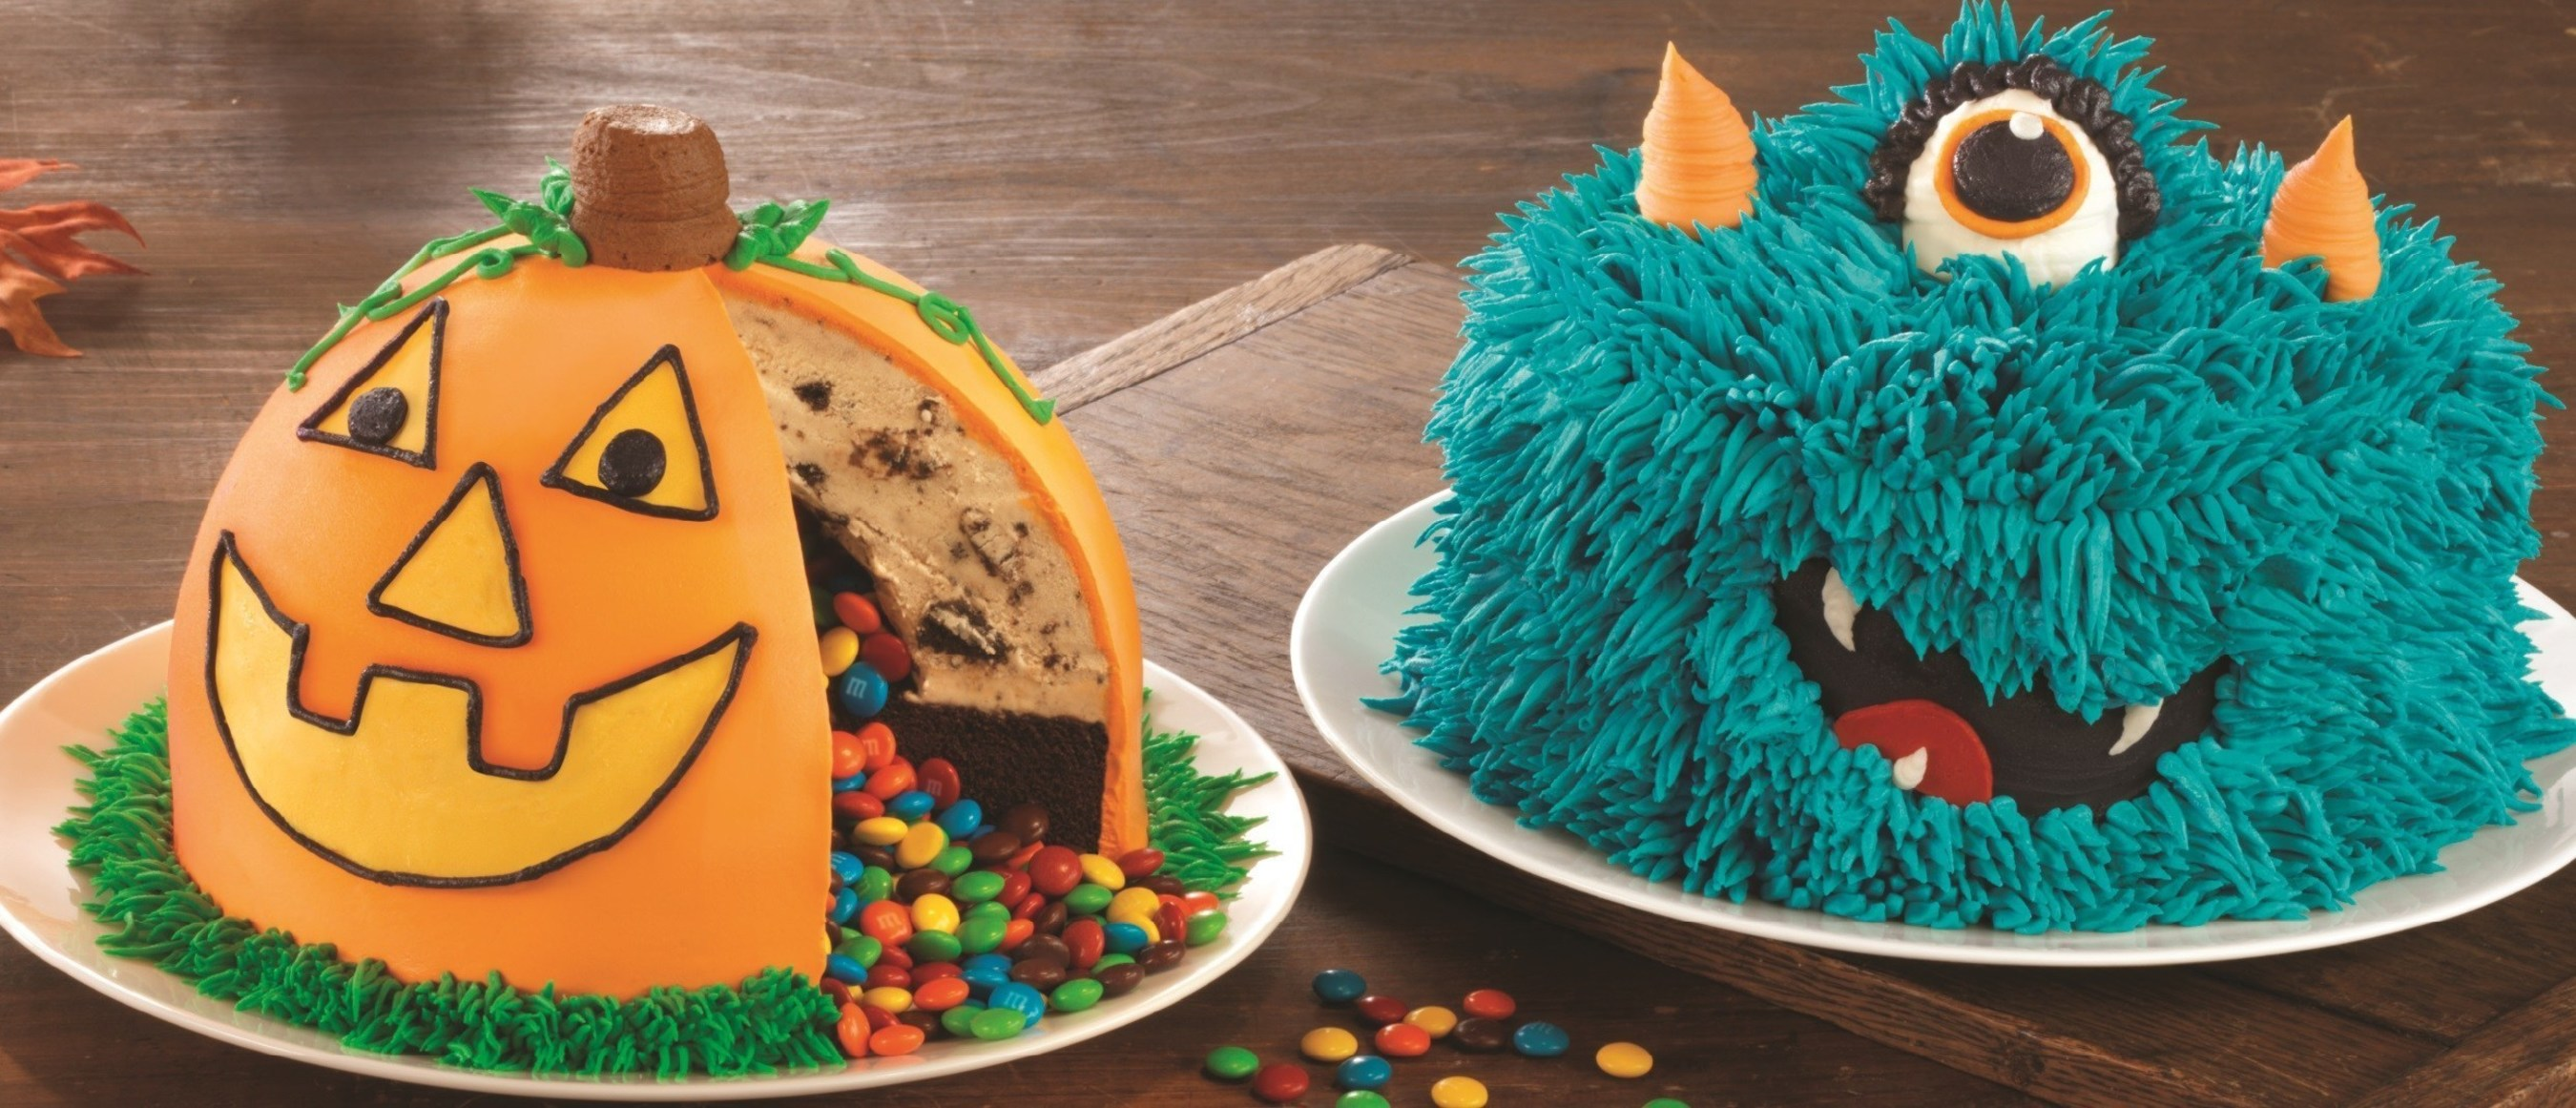 Baskin-Robbins Introduces a Frighteningly Delicious Lineup of Frozen Treats to Celebrate the Halloween Season All Month Long